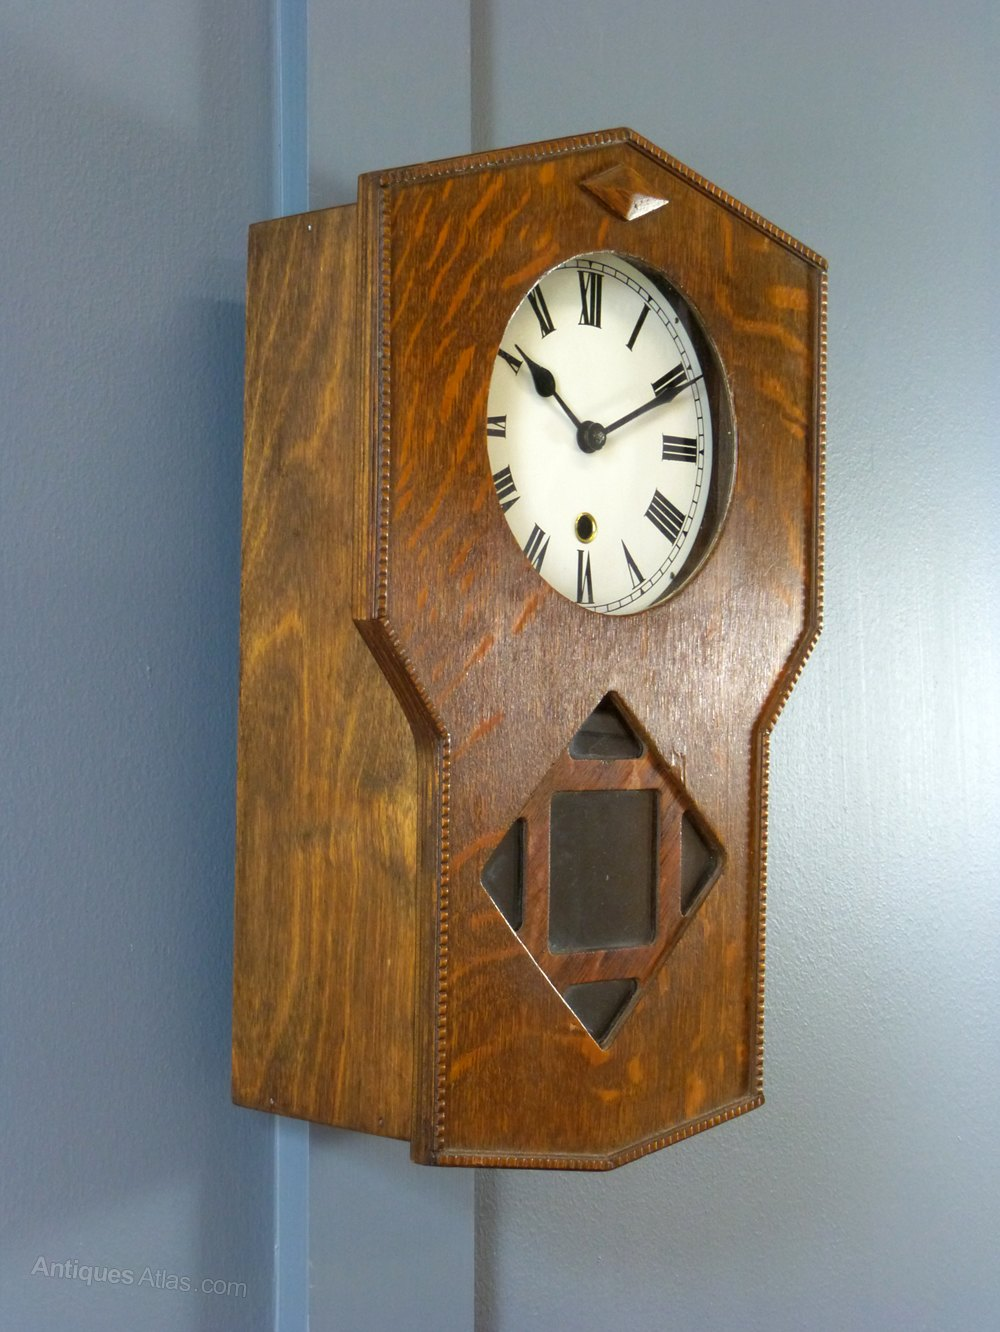 Antiques atlas an oak arts crafts wall clock for Arts and crafts style wall clock